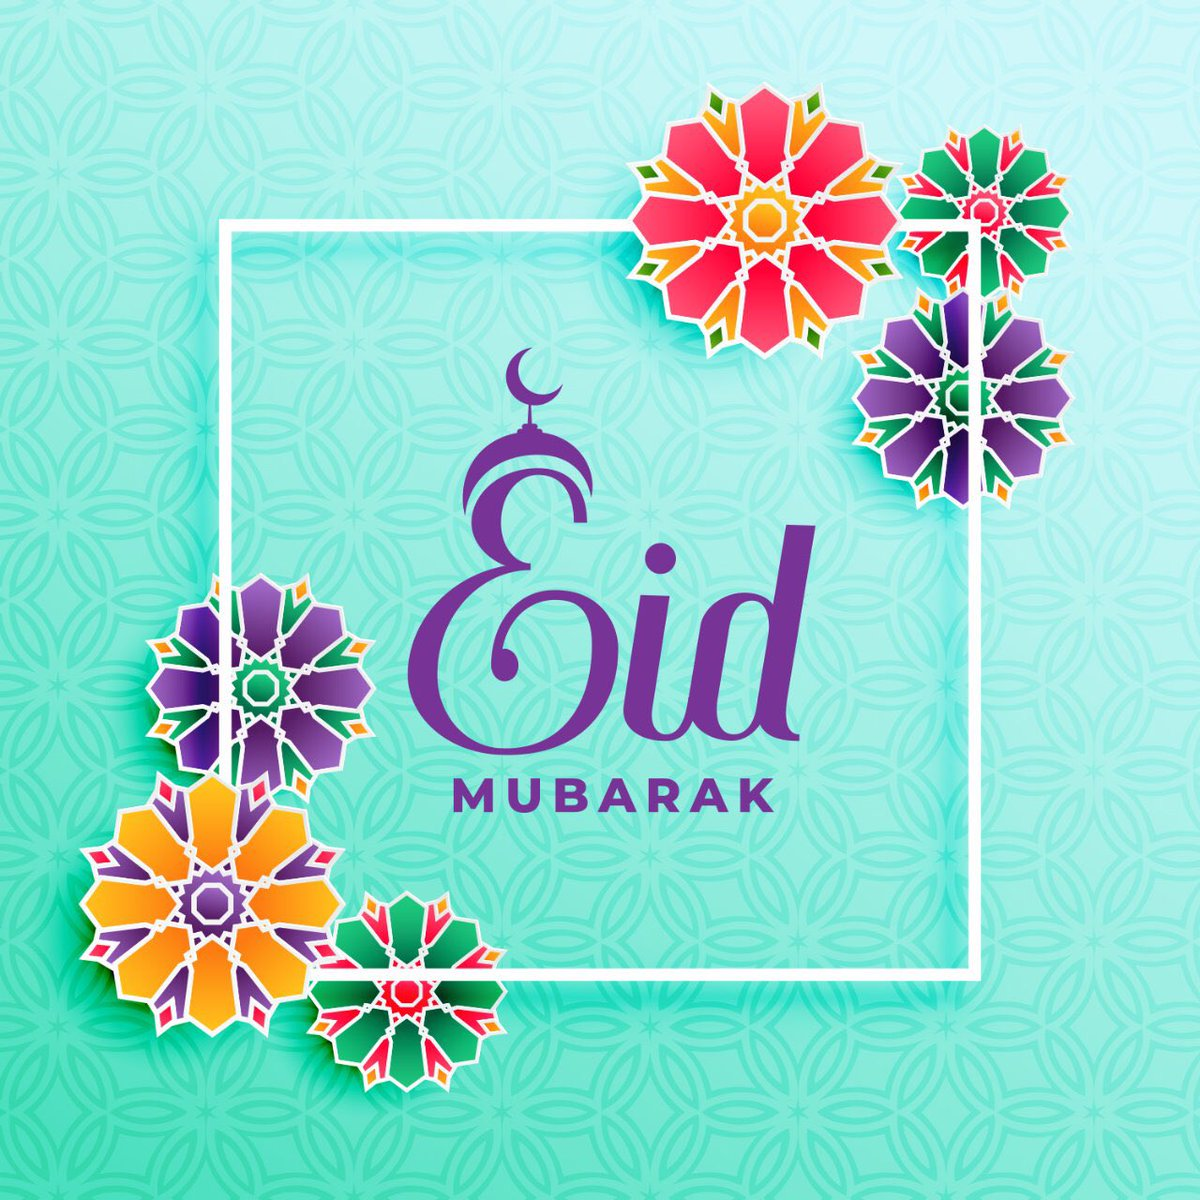 EID MUBARAK ALL OF YOU! 🌙✨❤️ Stay Home! Stay Safe!